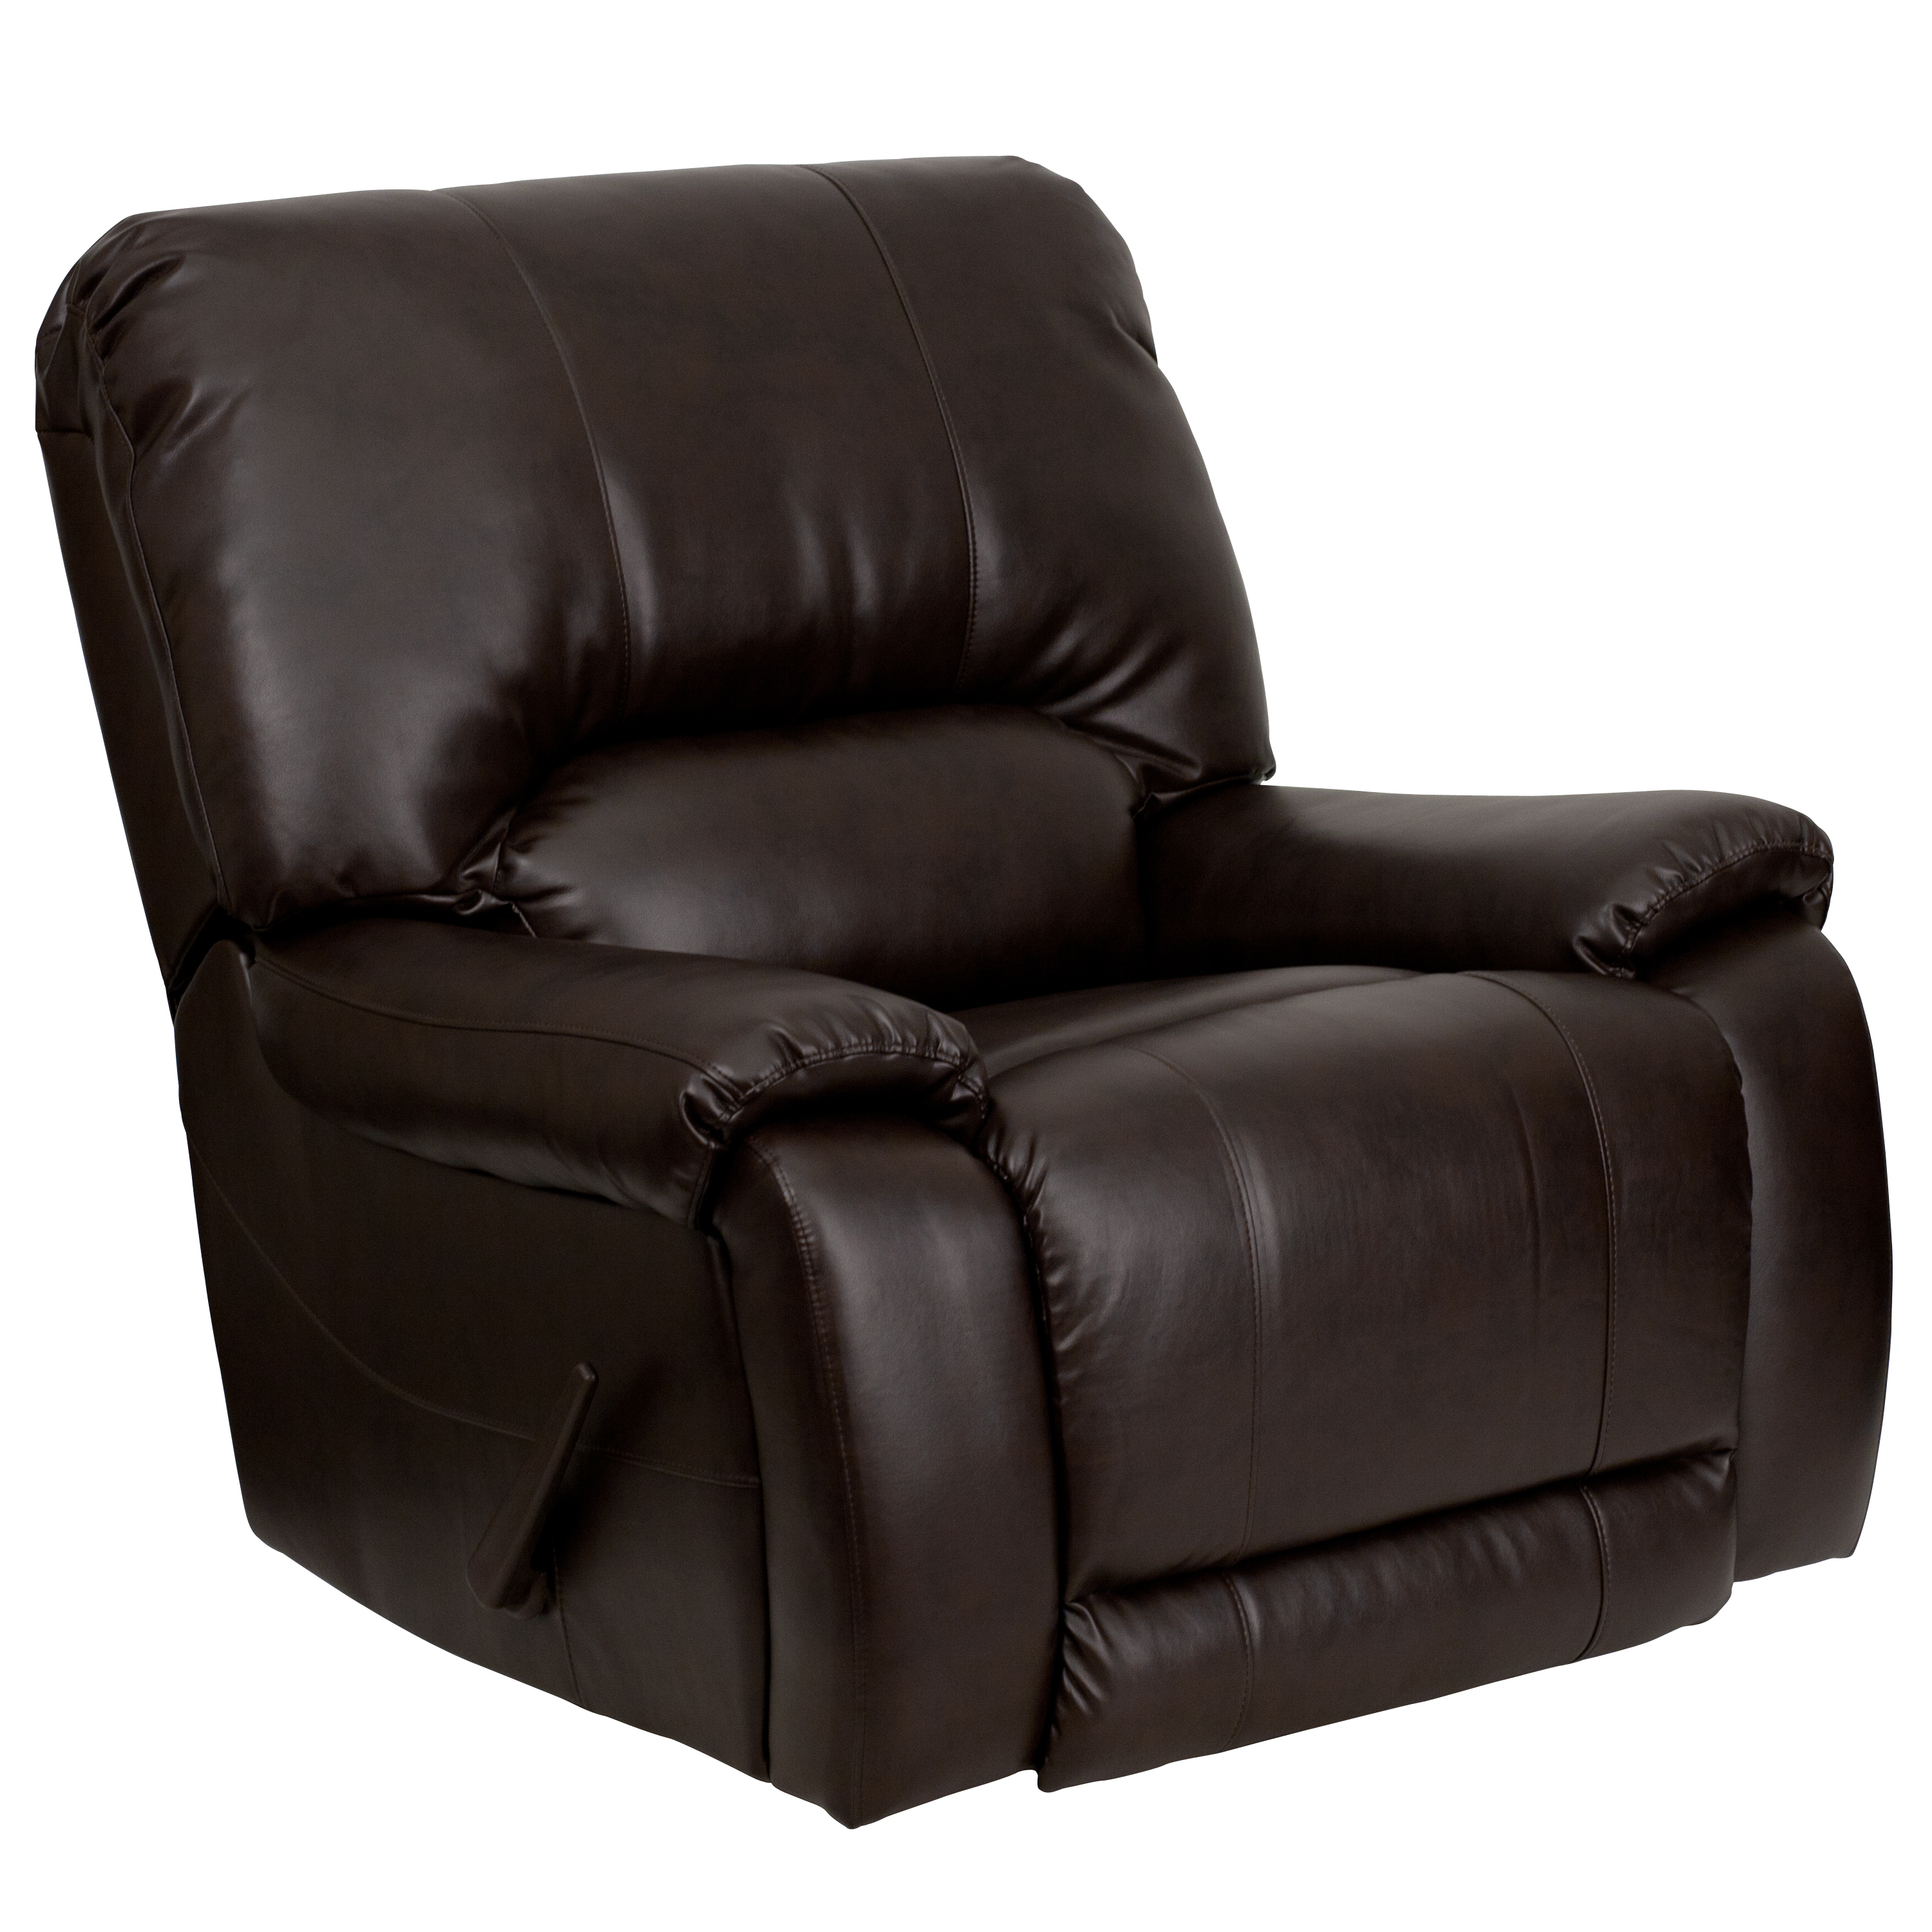 brown leather recliner chair men dsc brn gg overstuffed brown leather